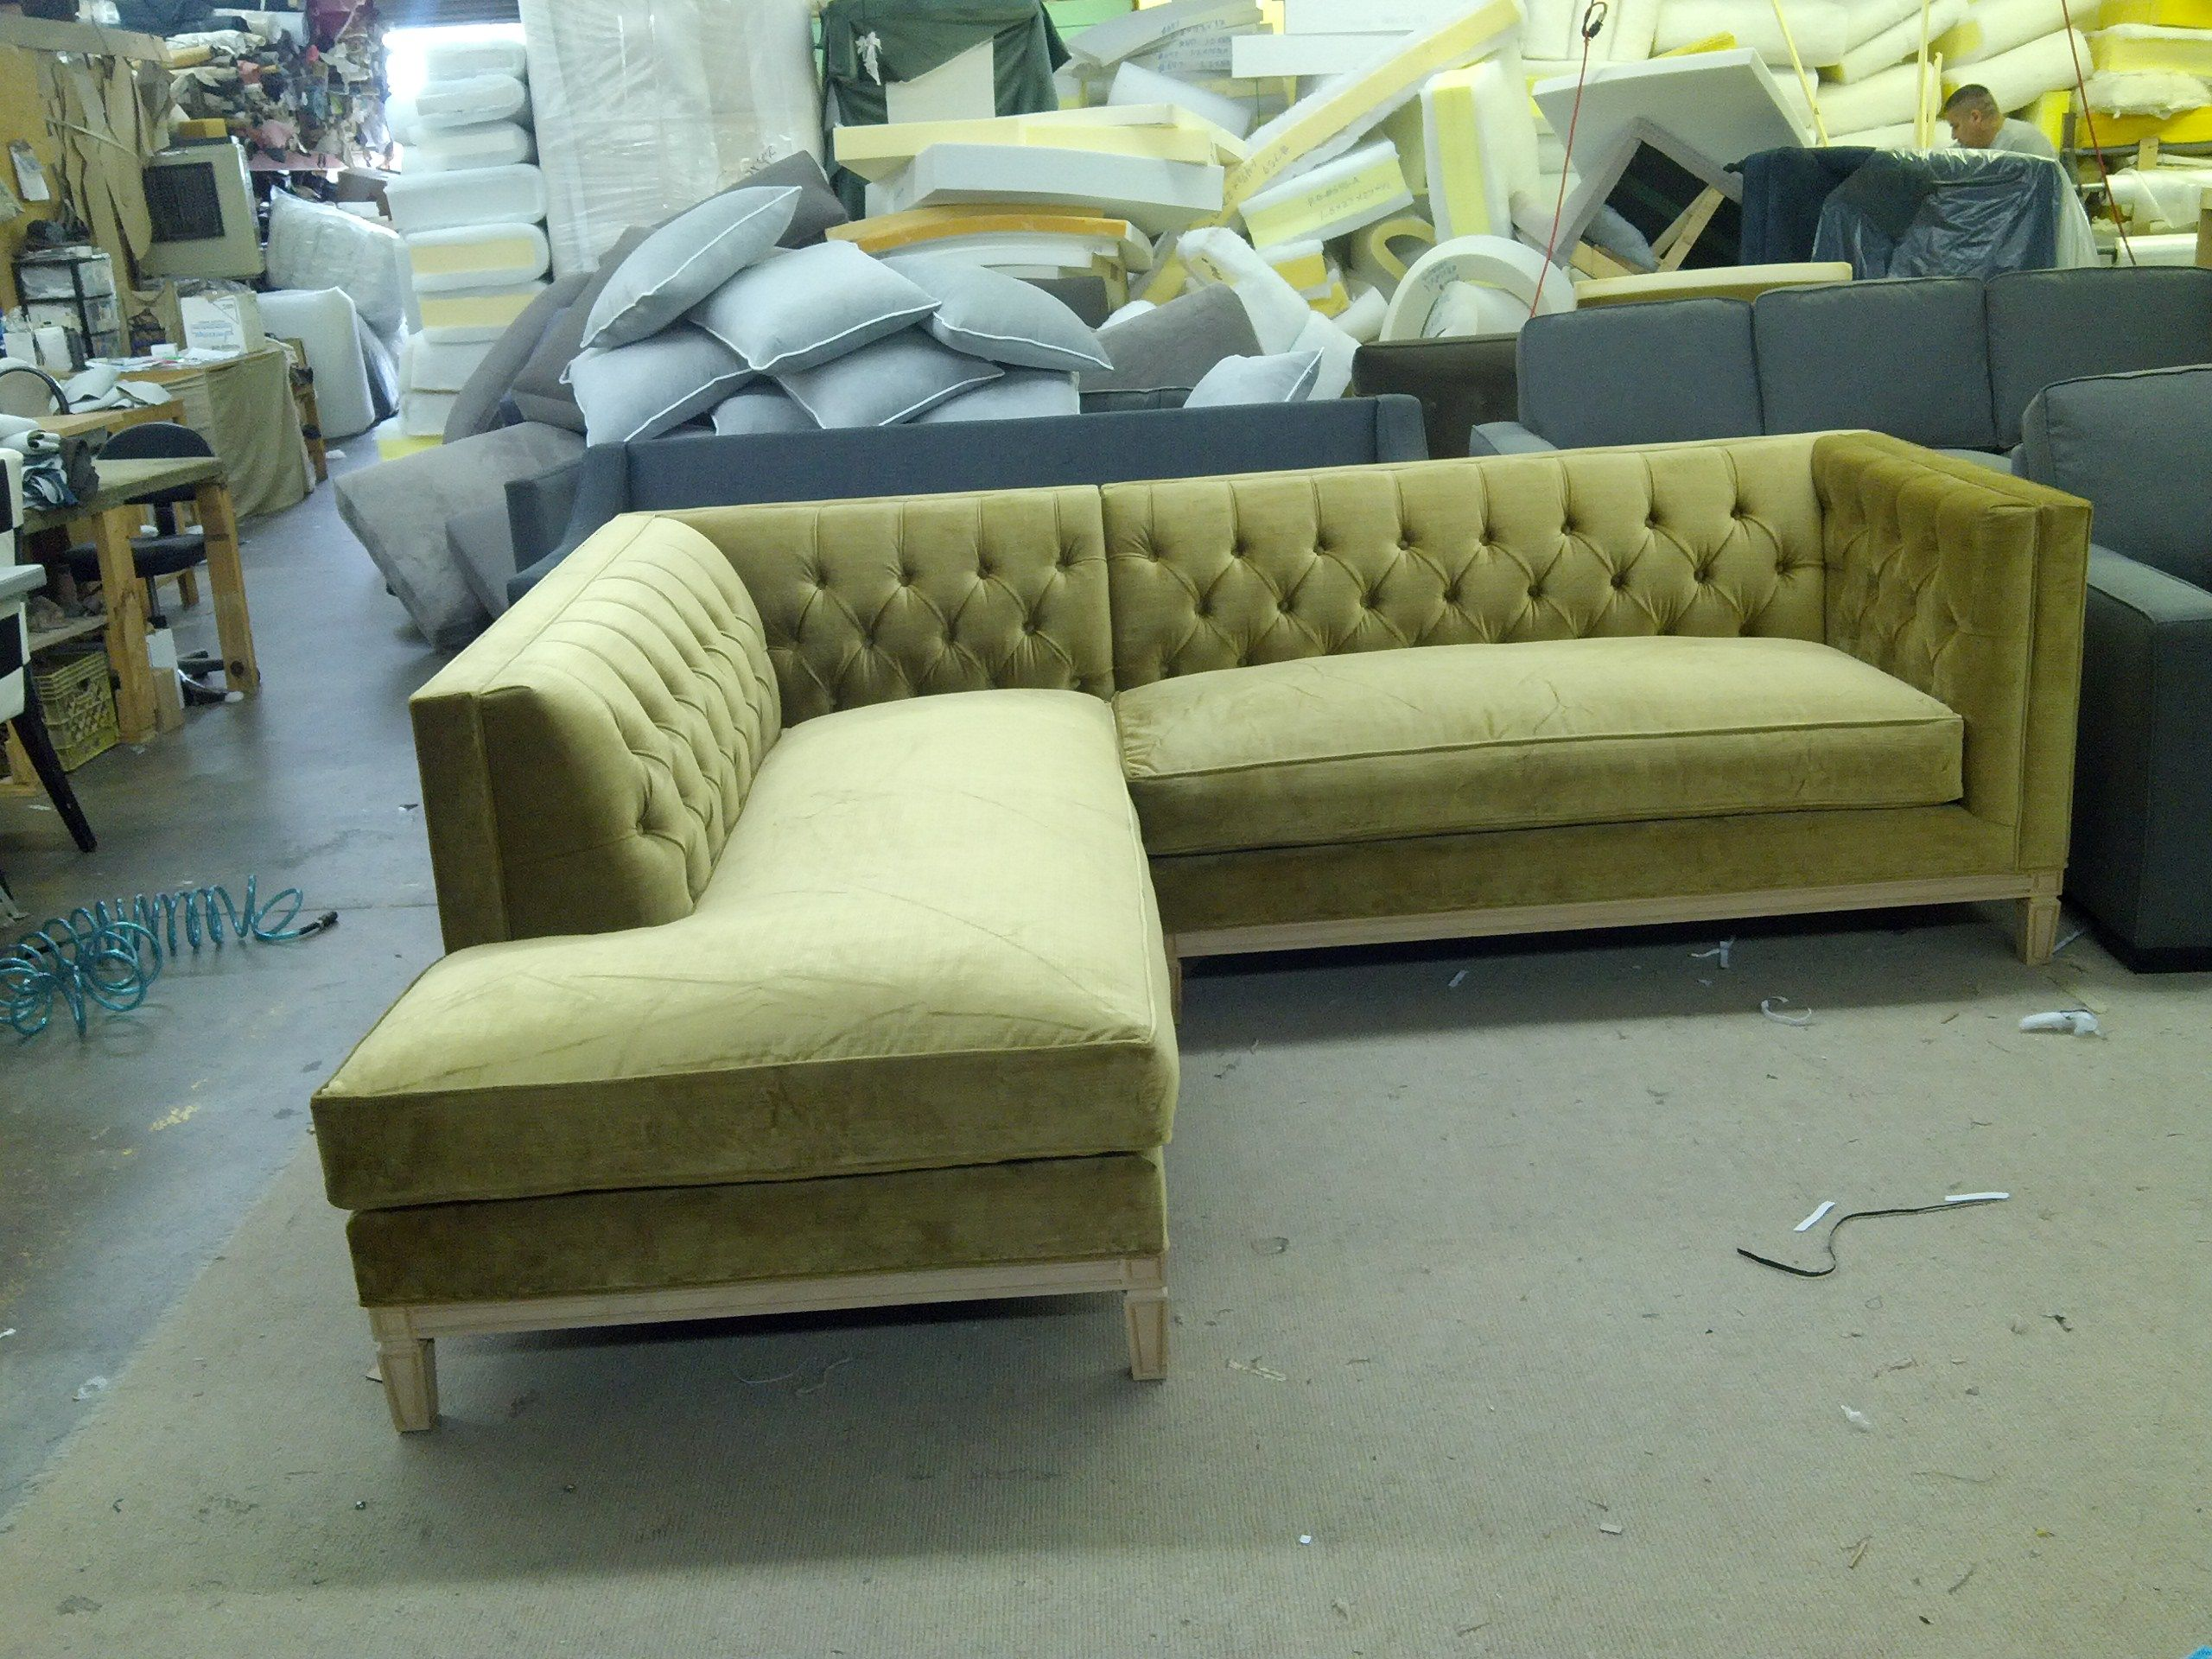 Brilliant Diamond Tufted Sectional From The Sofaworks 2100 Irving Pabps2019 Chair Design Images Pabps2019Com